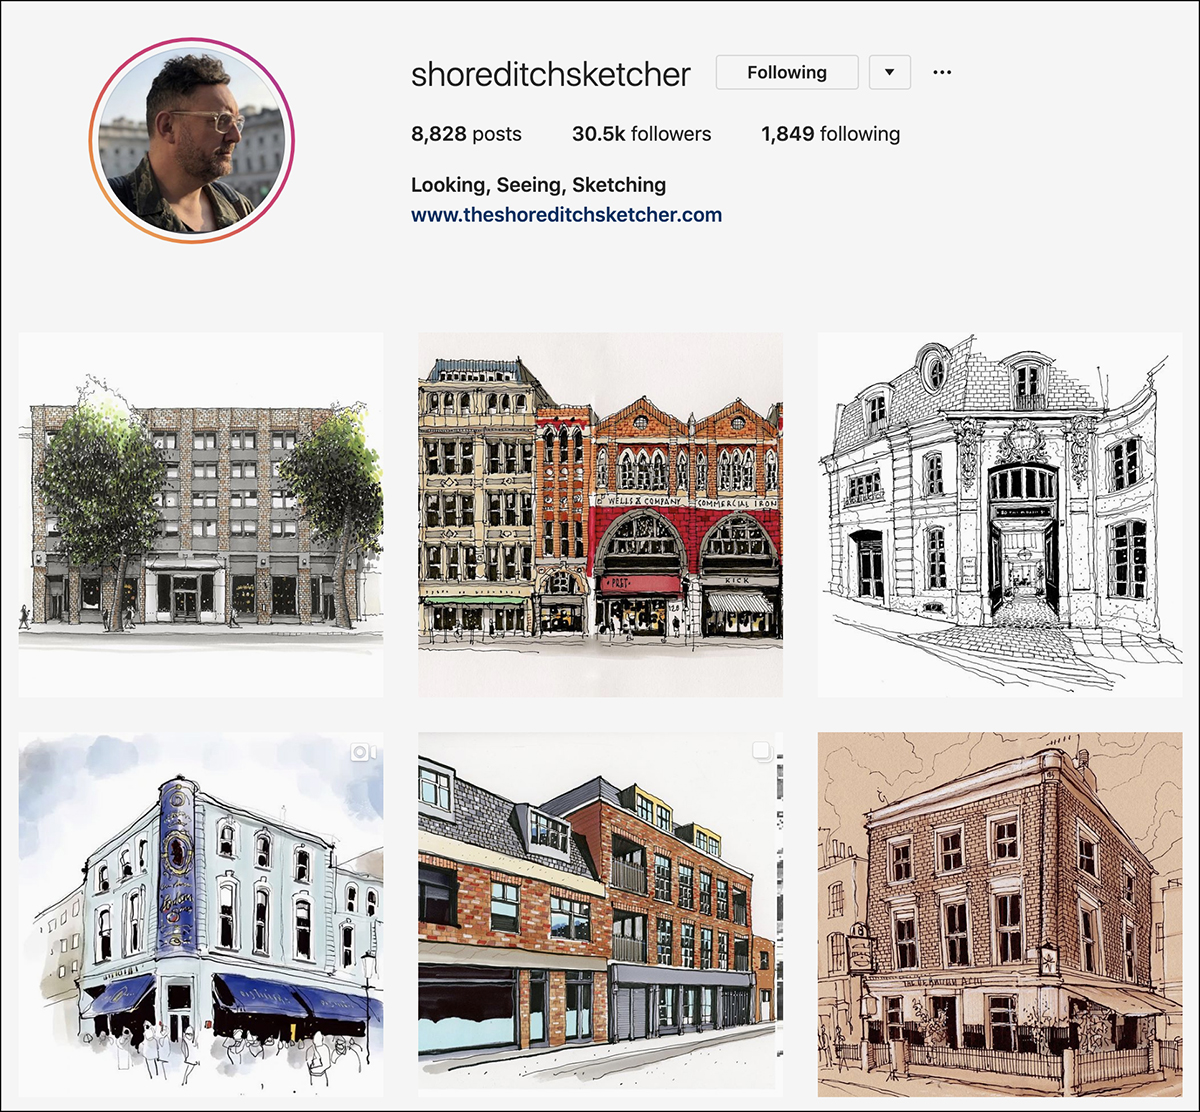 shoreditchsketcher Instagram account - good for sketching